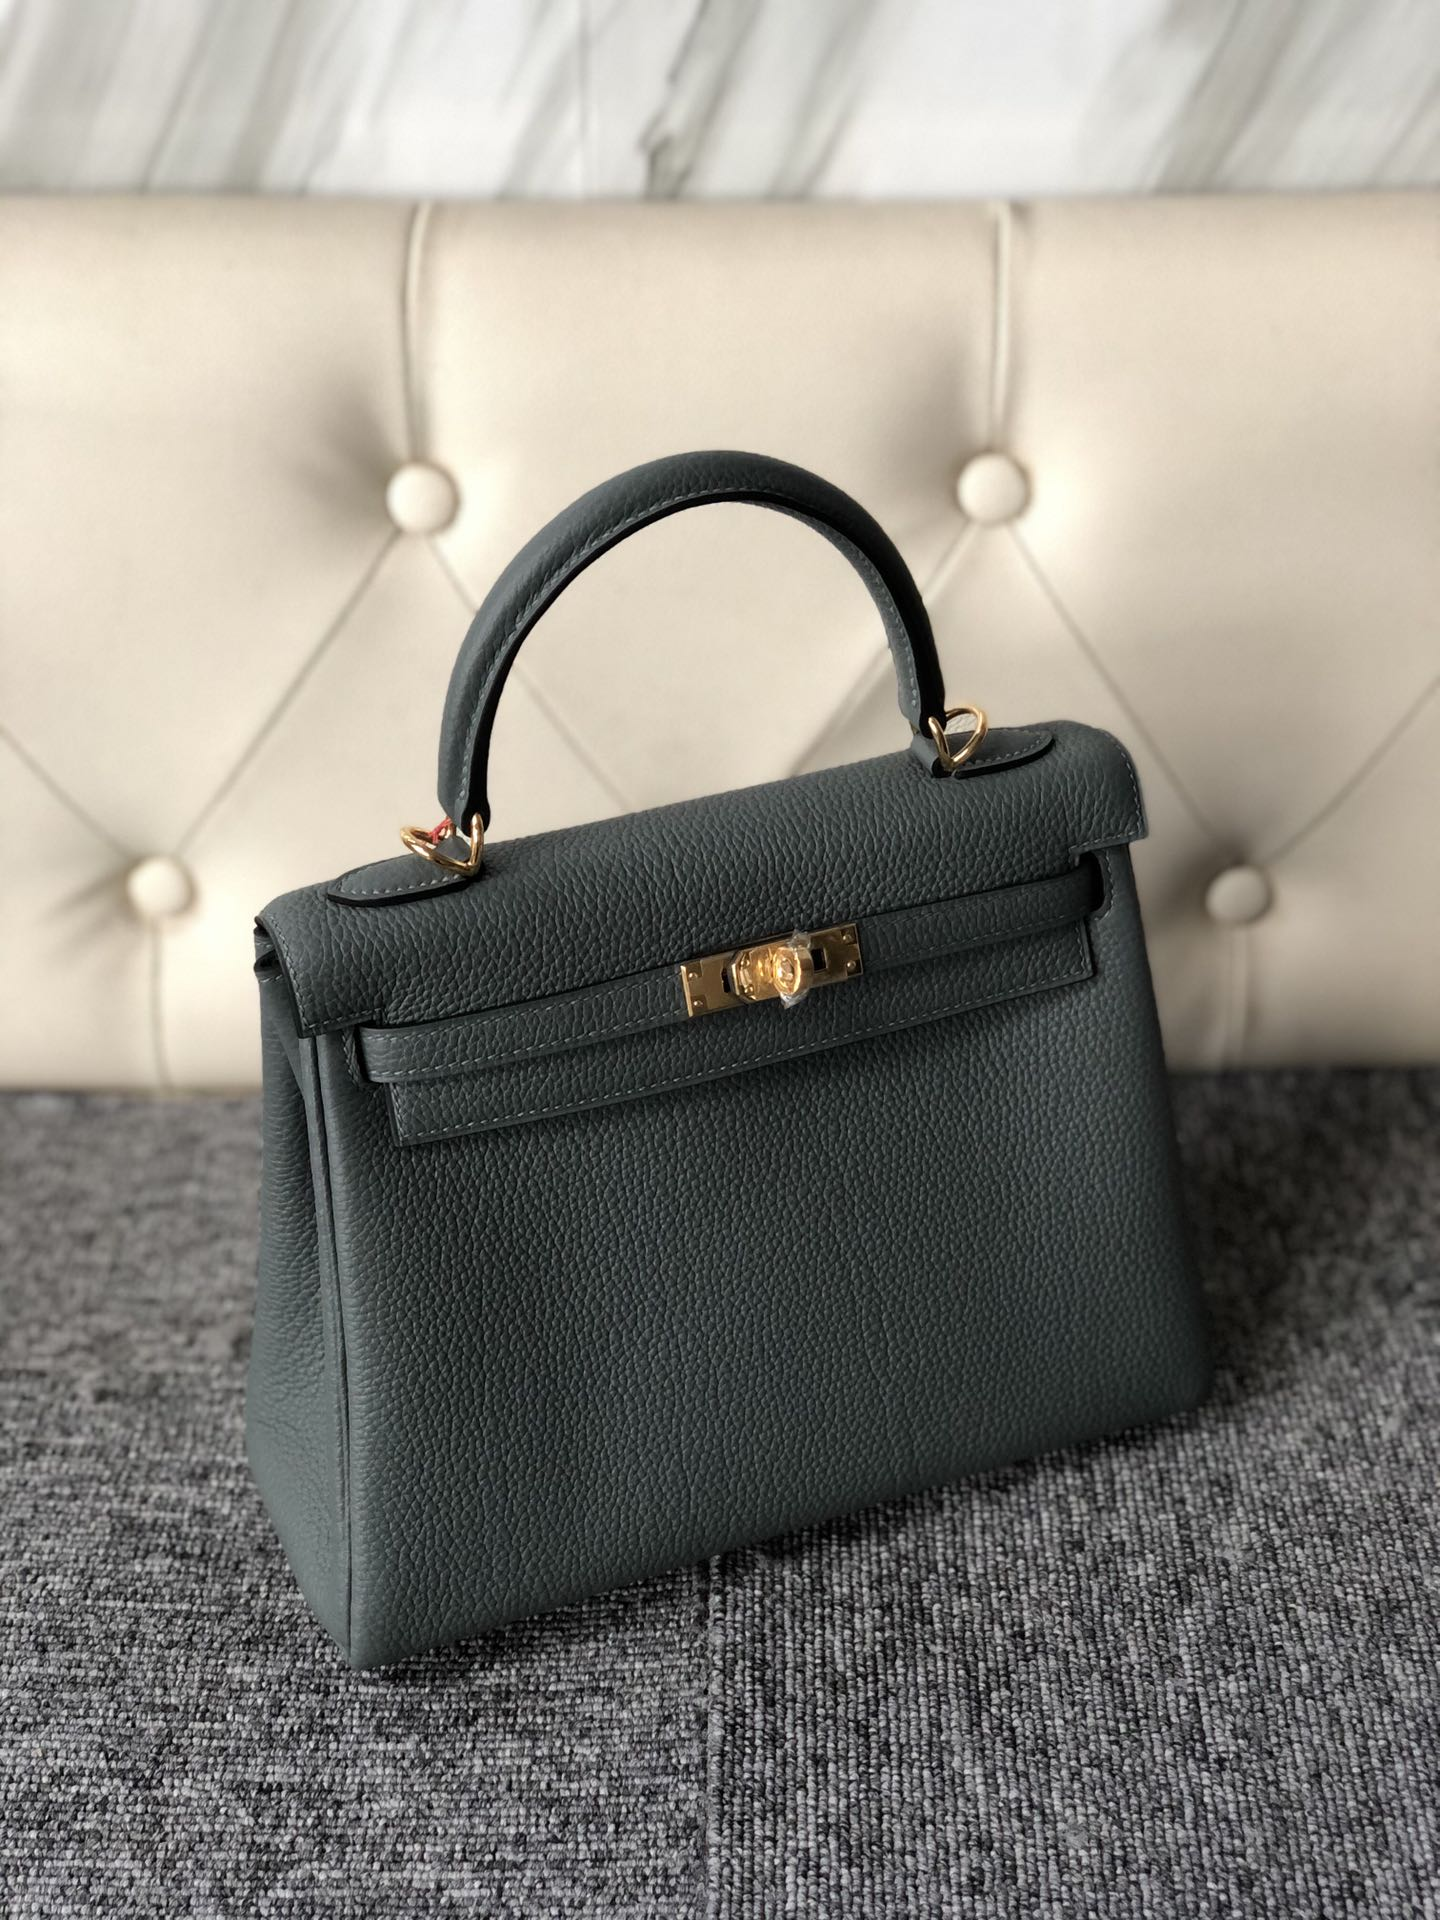 Fashion Hermes Togo Calf Kelly25cm Bag in CC63 Vert Amande Gold Hardware